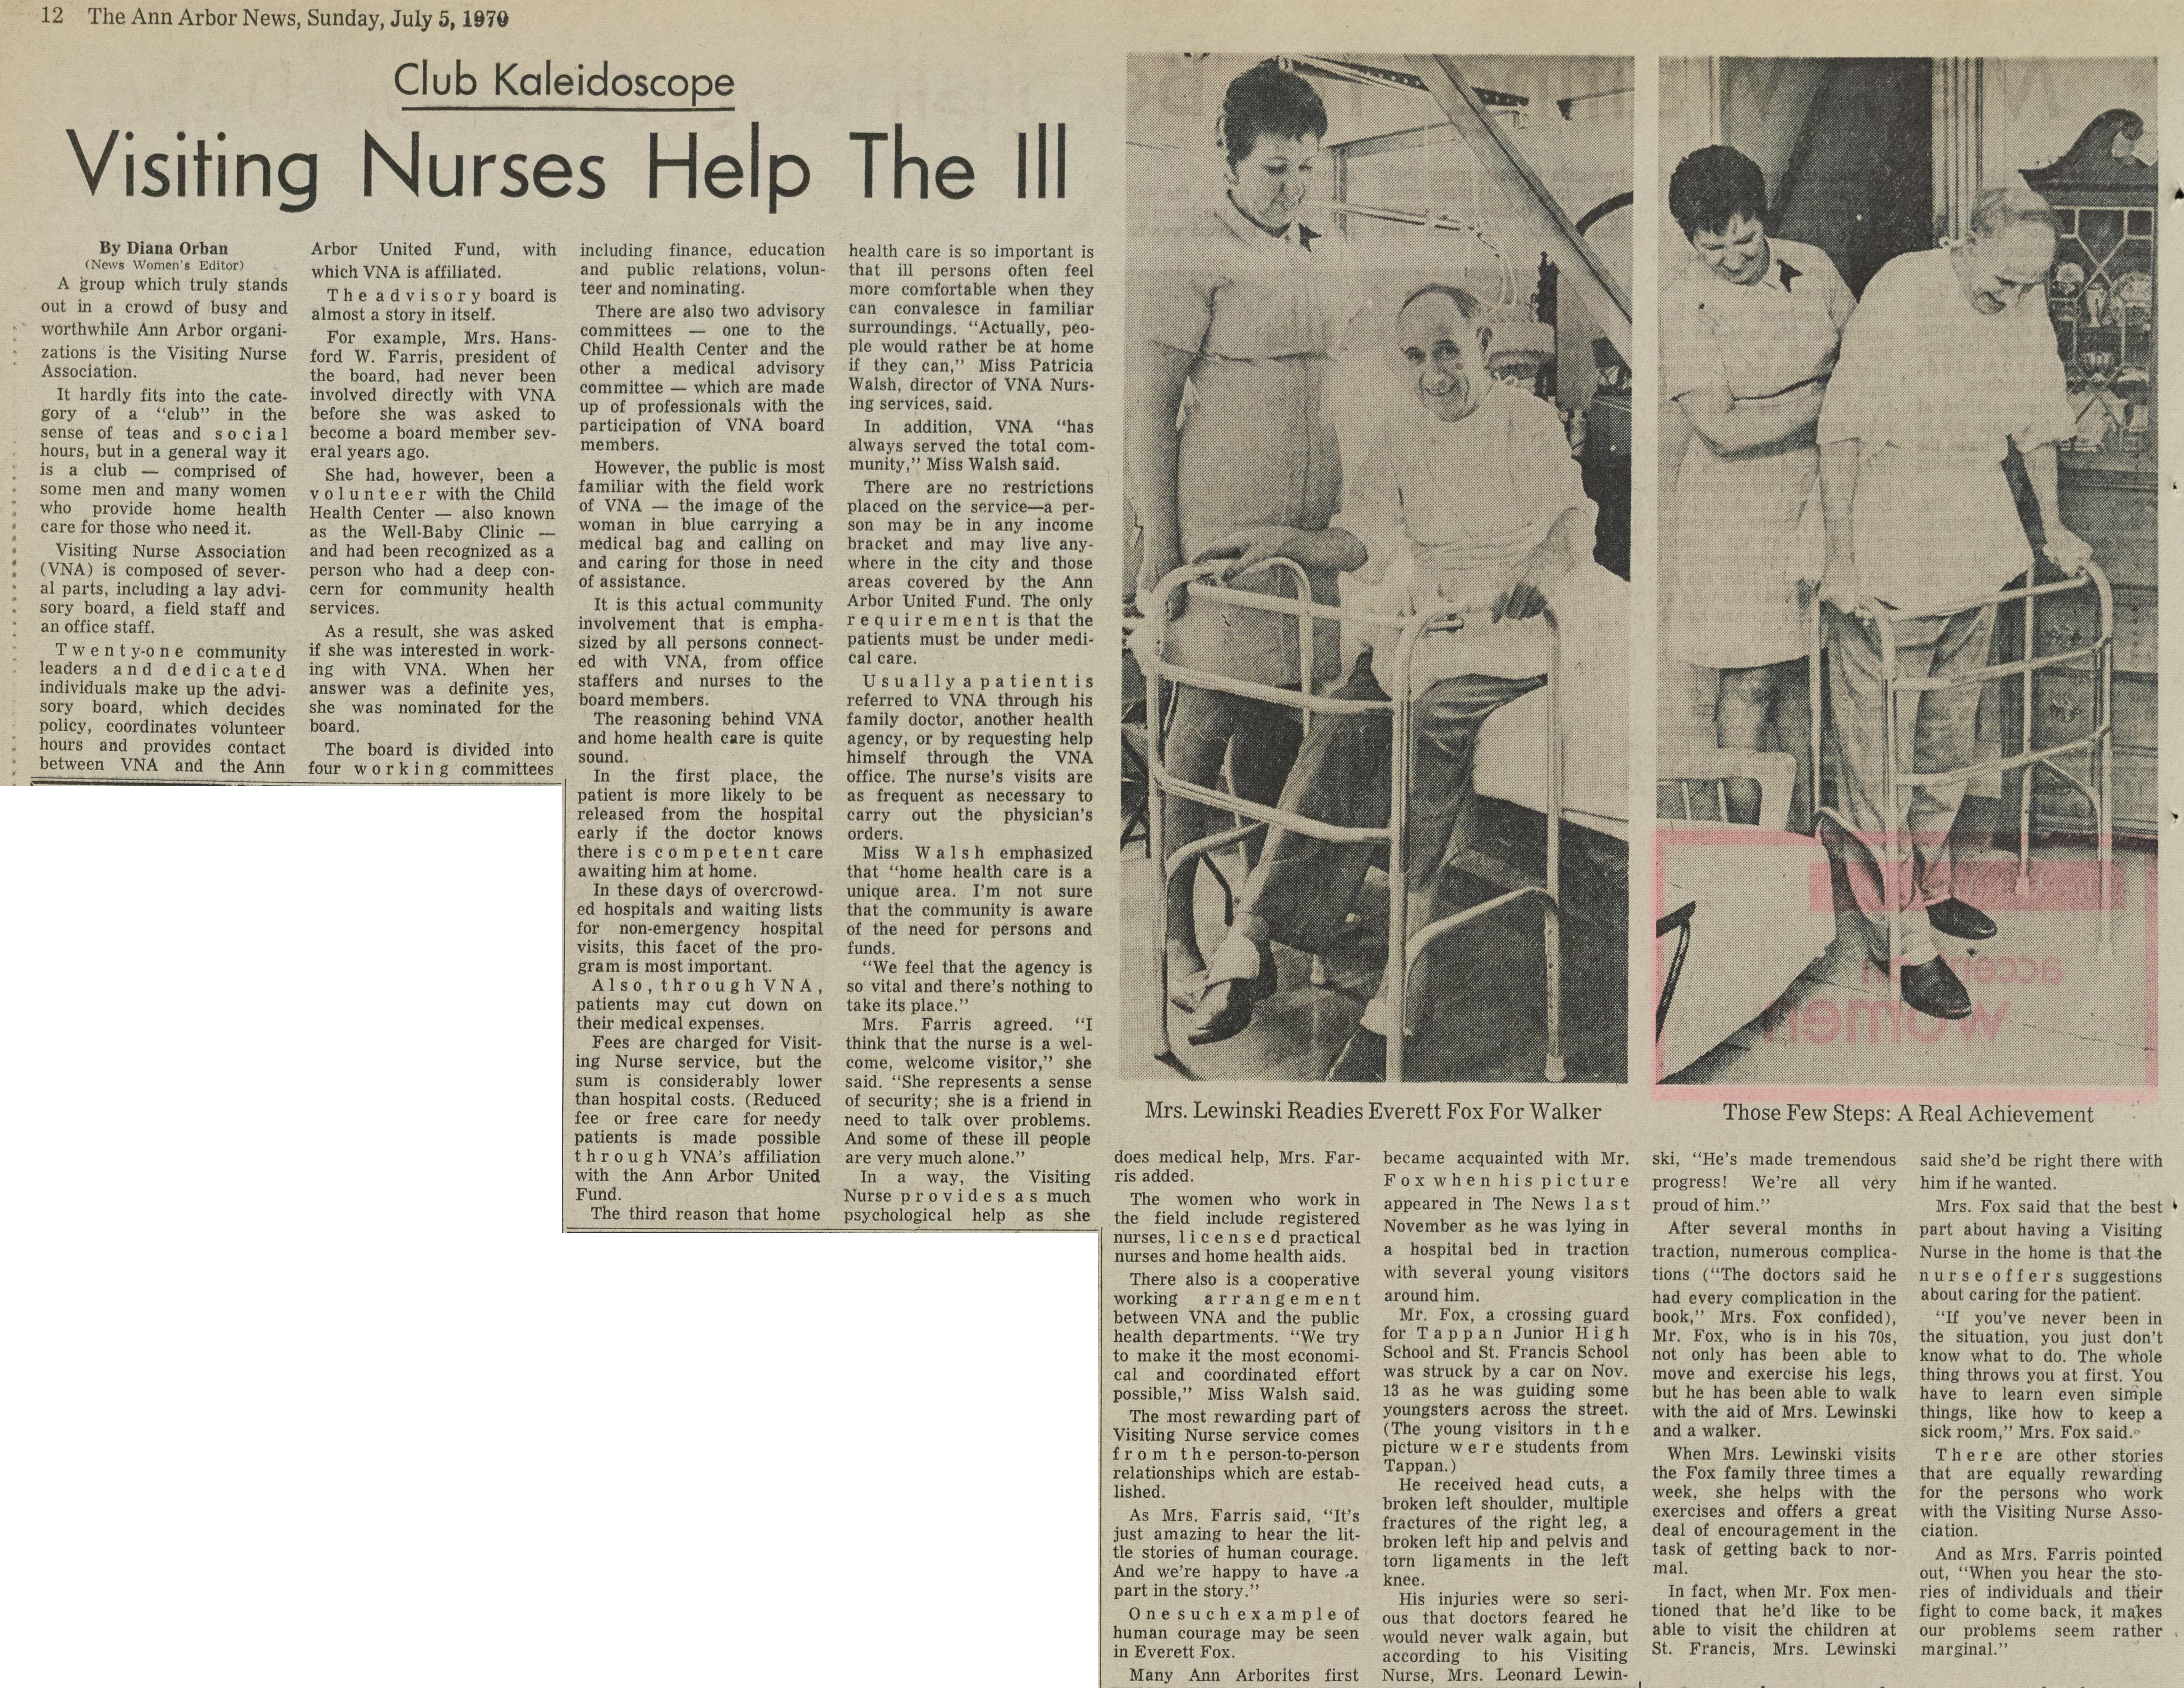 Visiting Nurses Help The Ill image